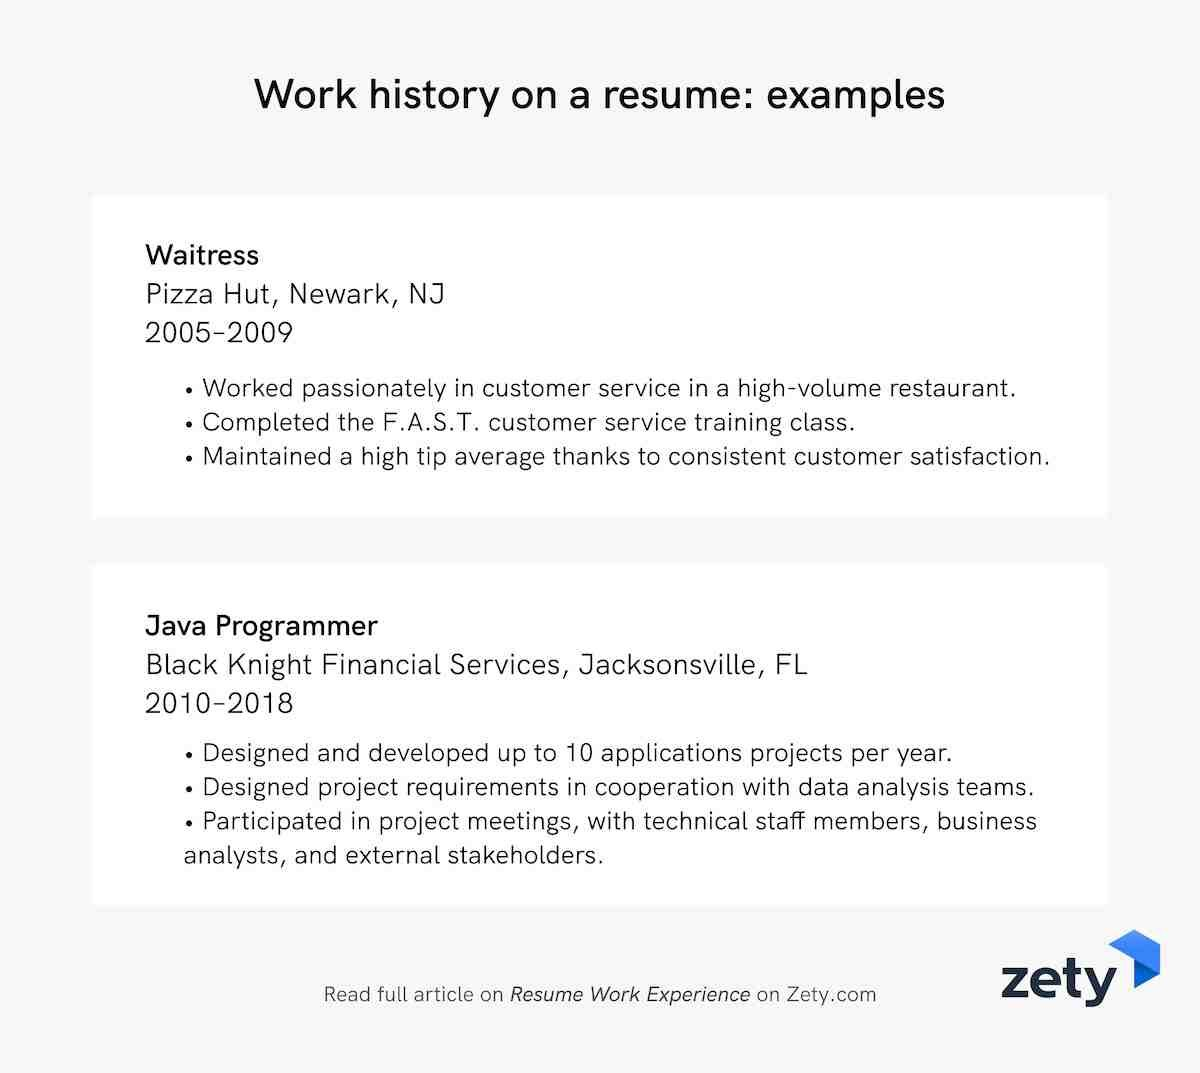 resume work experience history example job descriptions with one on examples patient Resume Resume With One Job History